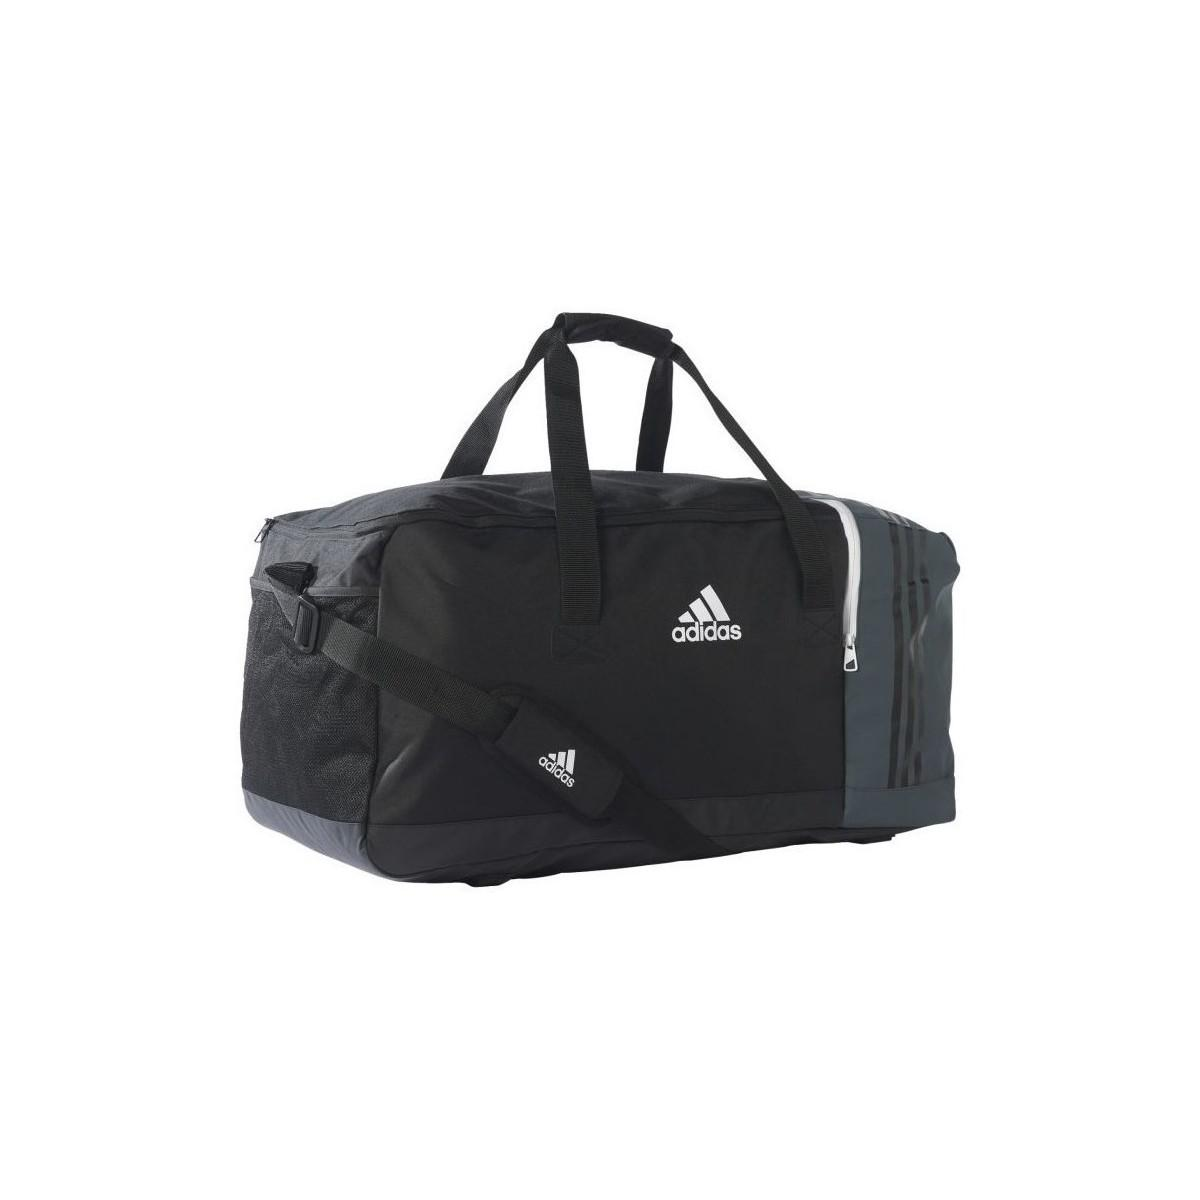 Adidas Tiro Team Bag Large Men s Bag In Black in Black for Men - Lyst 0ced9db05557b